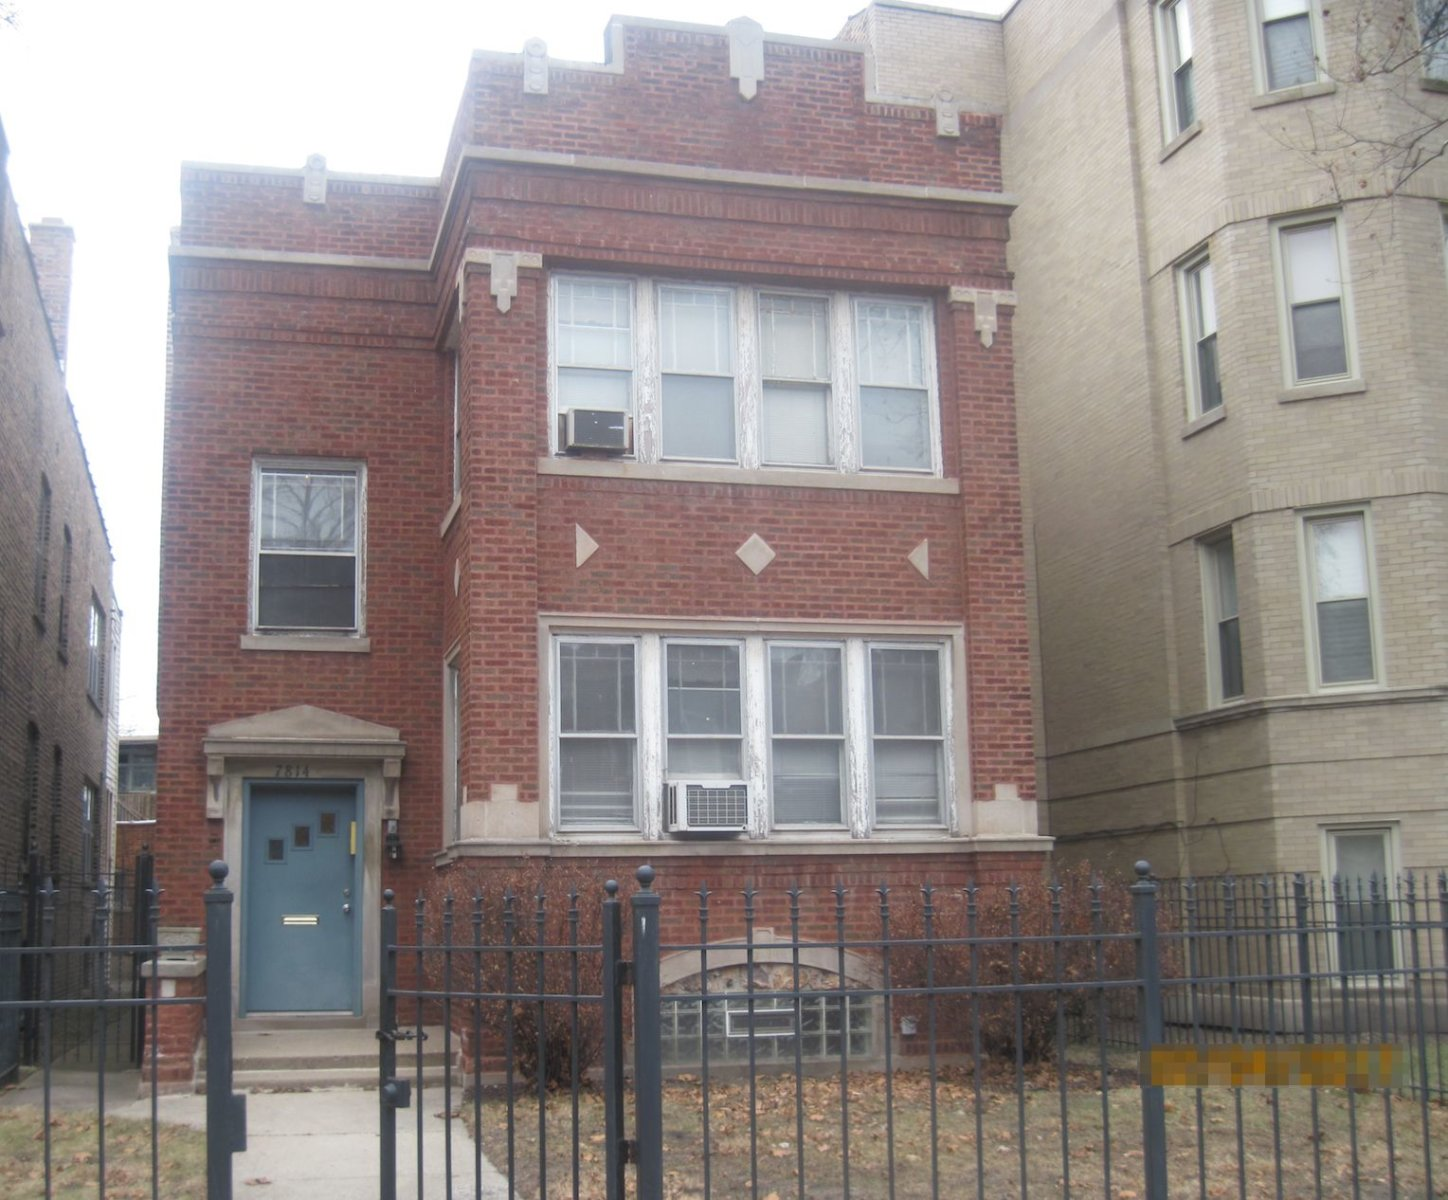 7814 S. Euclid, Chicago, IL